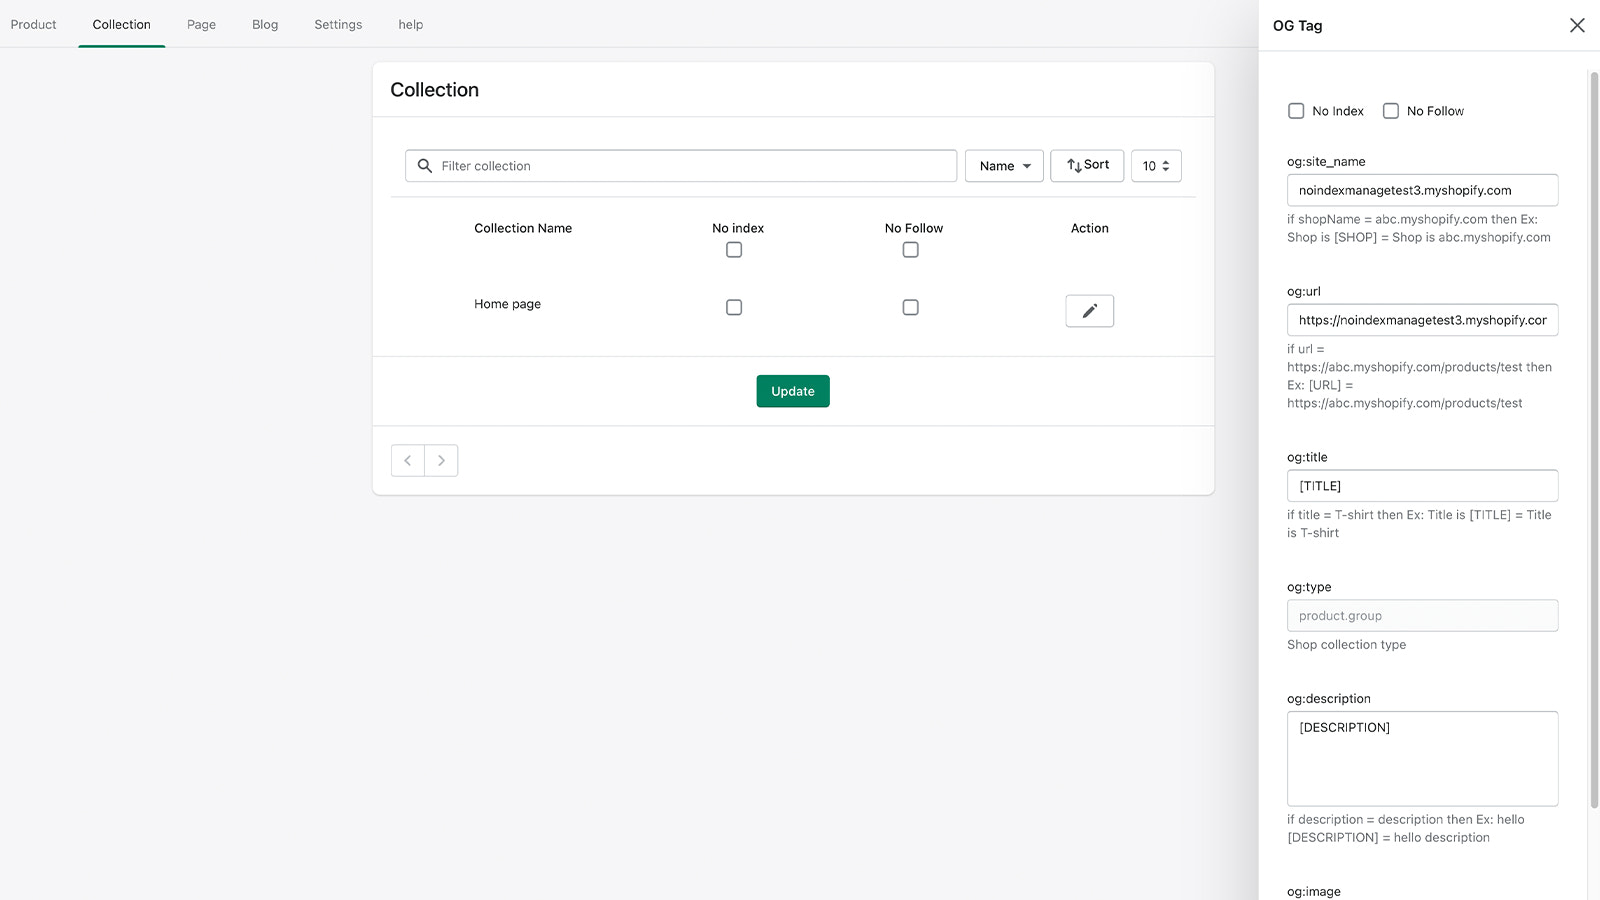 Collection Page Settings